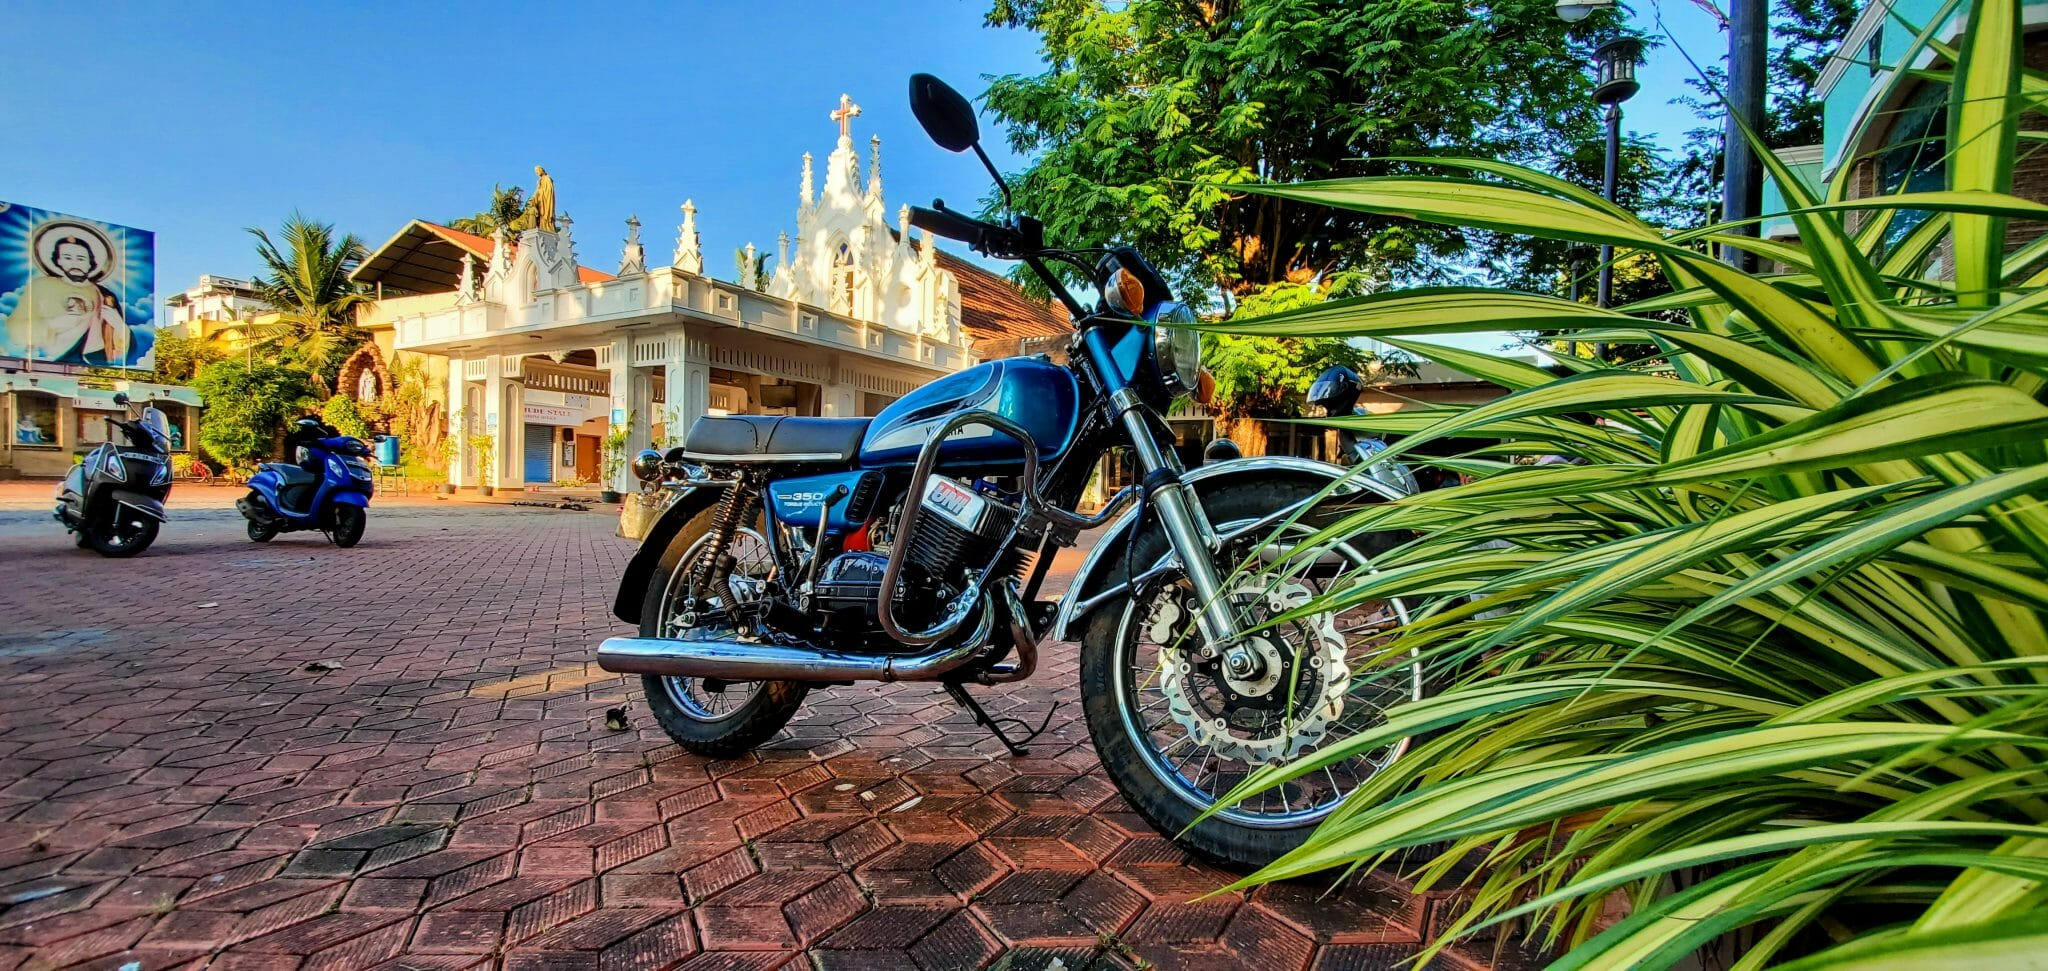 Two Wheels Photo Contest